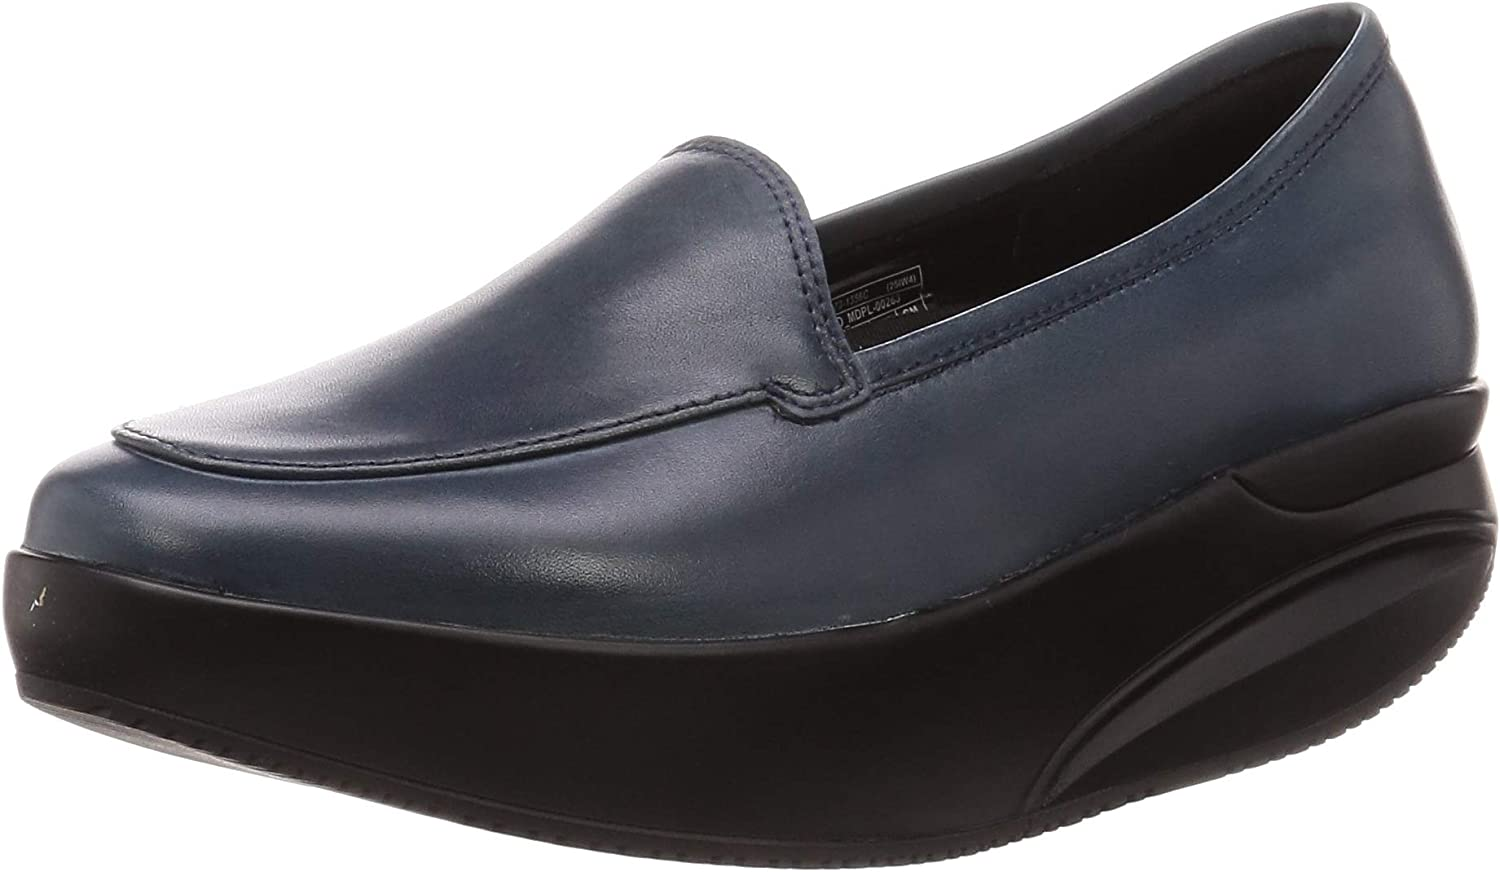 MBT Women's Loafers Challenge the lowest price Translated